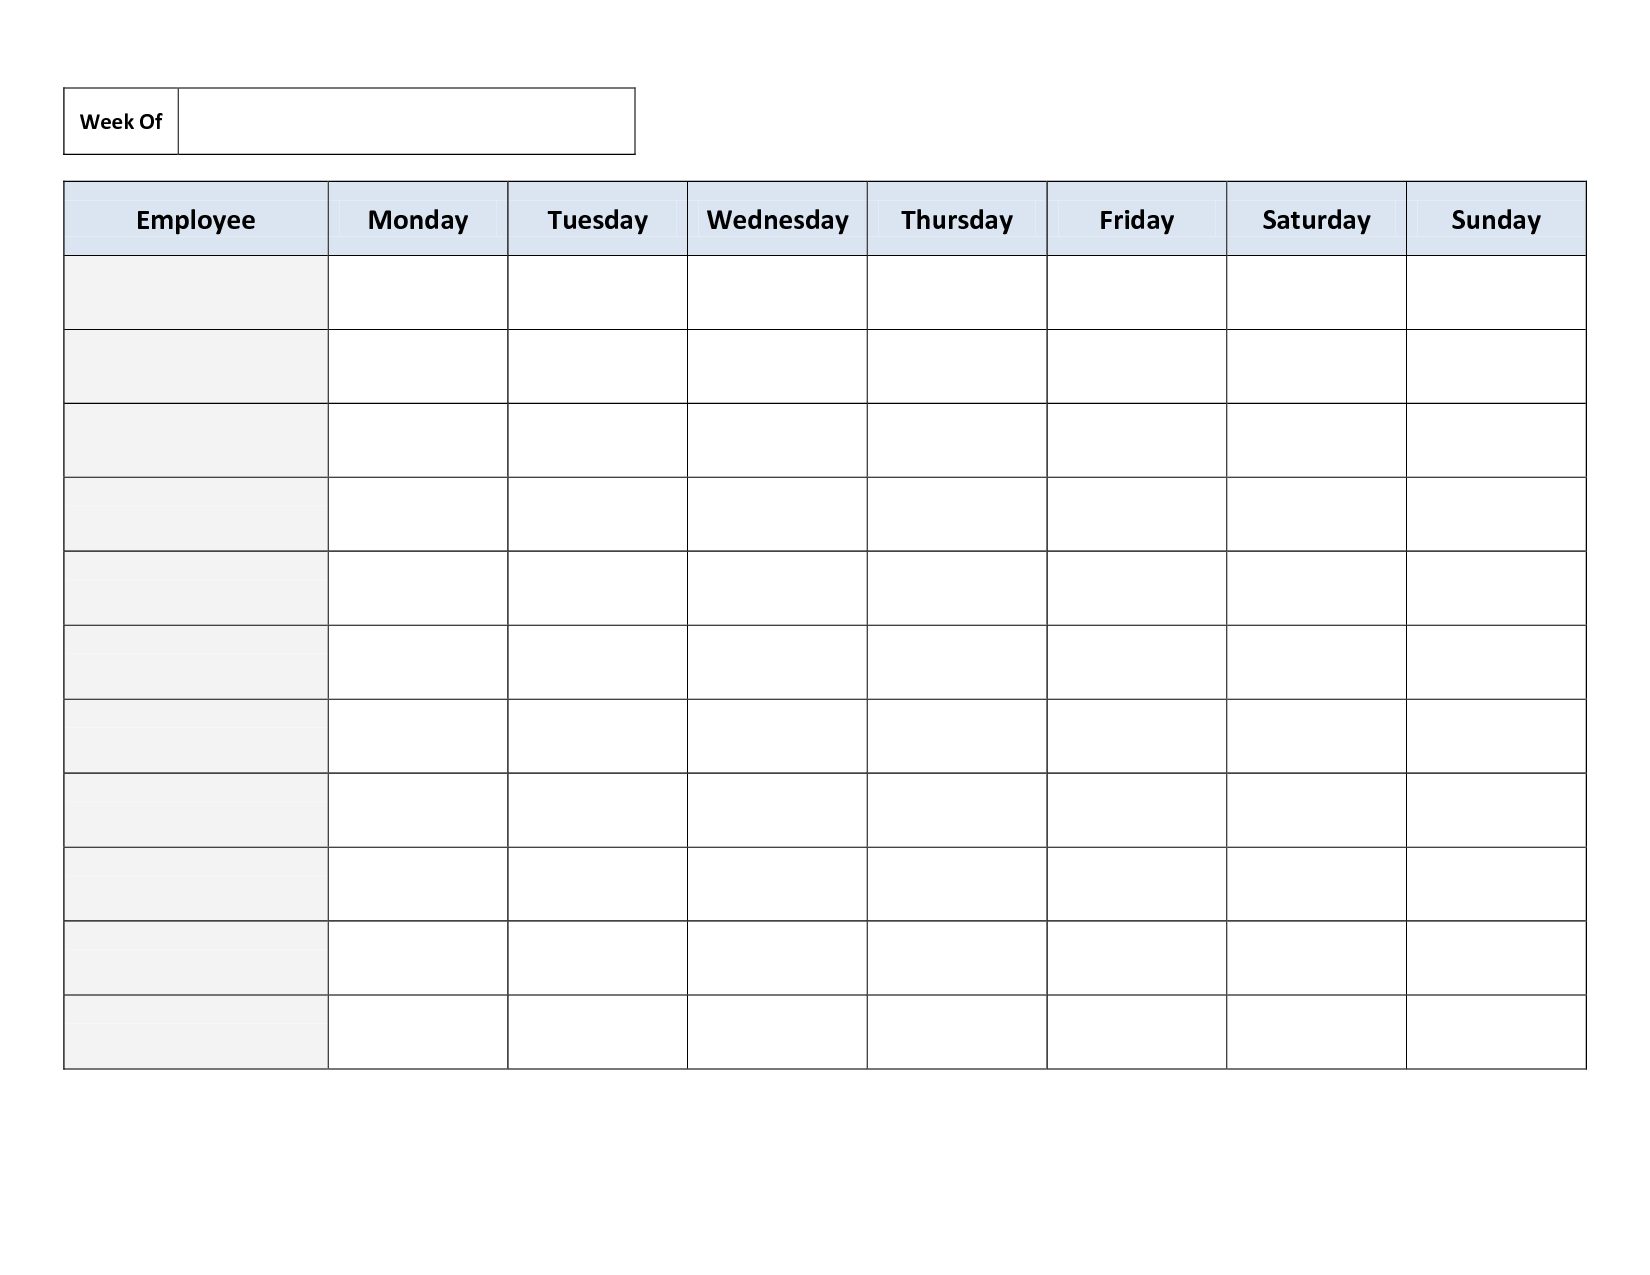 Free Weekly Schedule Templates For Word - 18 Templates ...